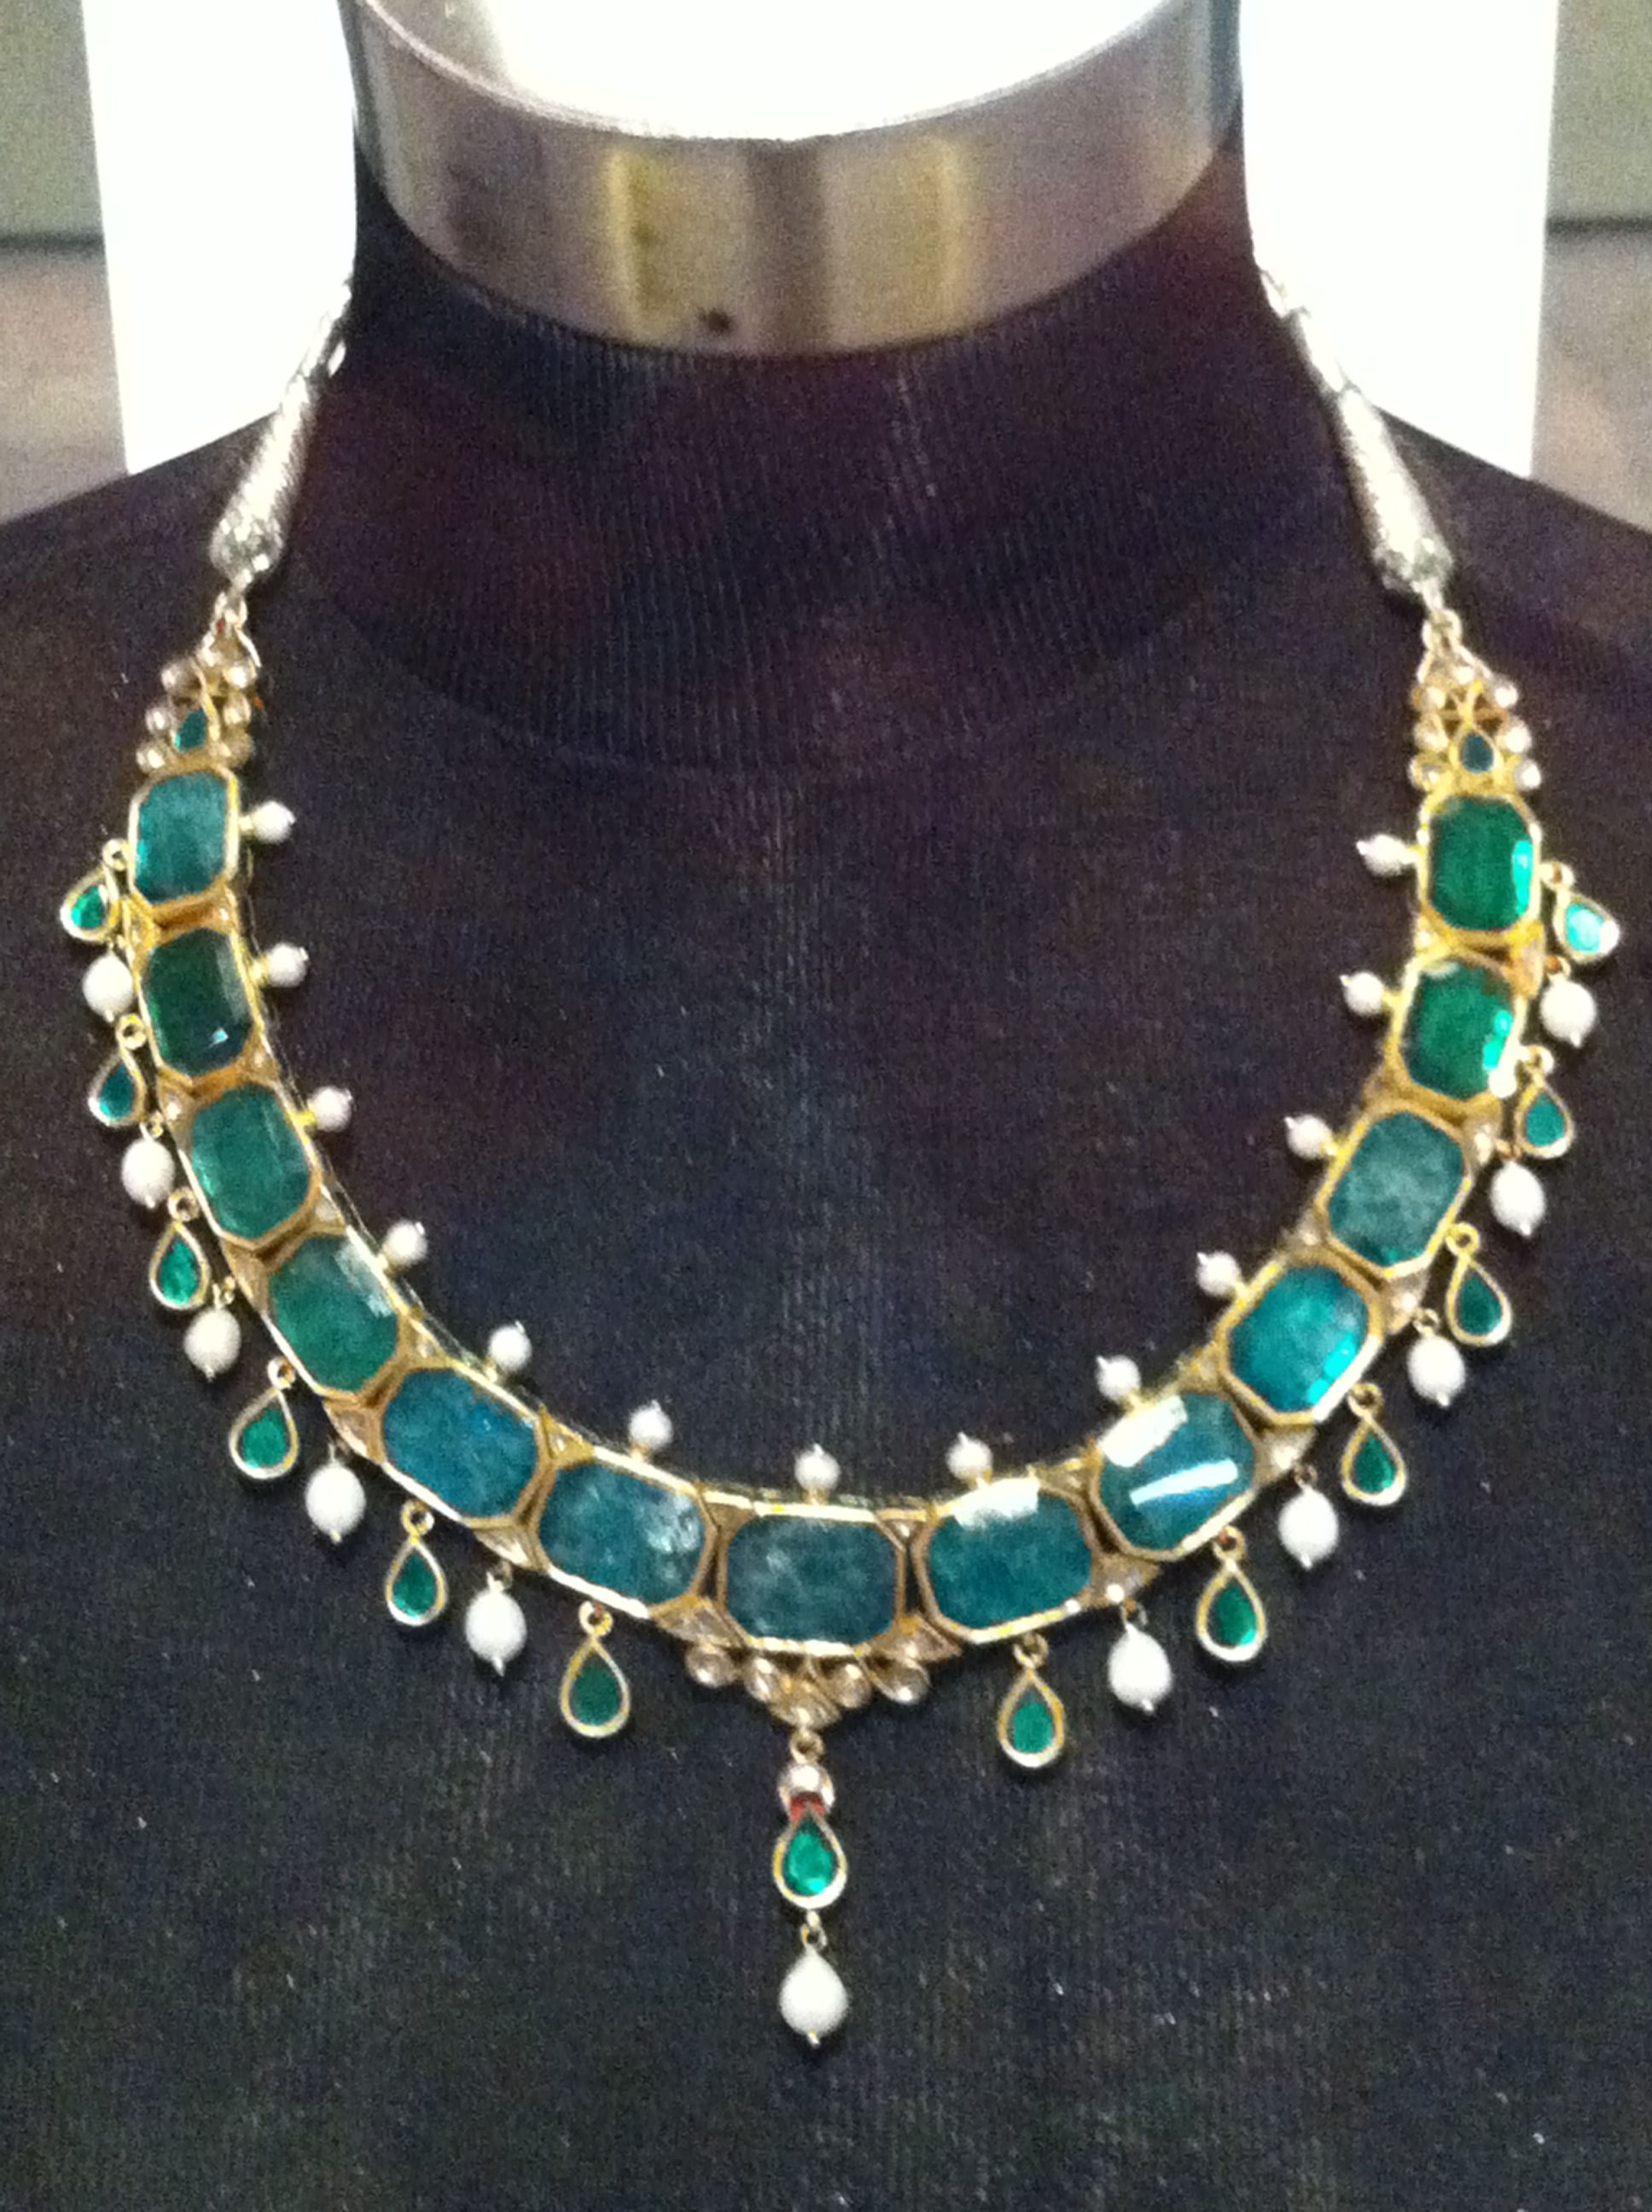 Gorgeous traditional Malaysian necklace